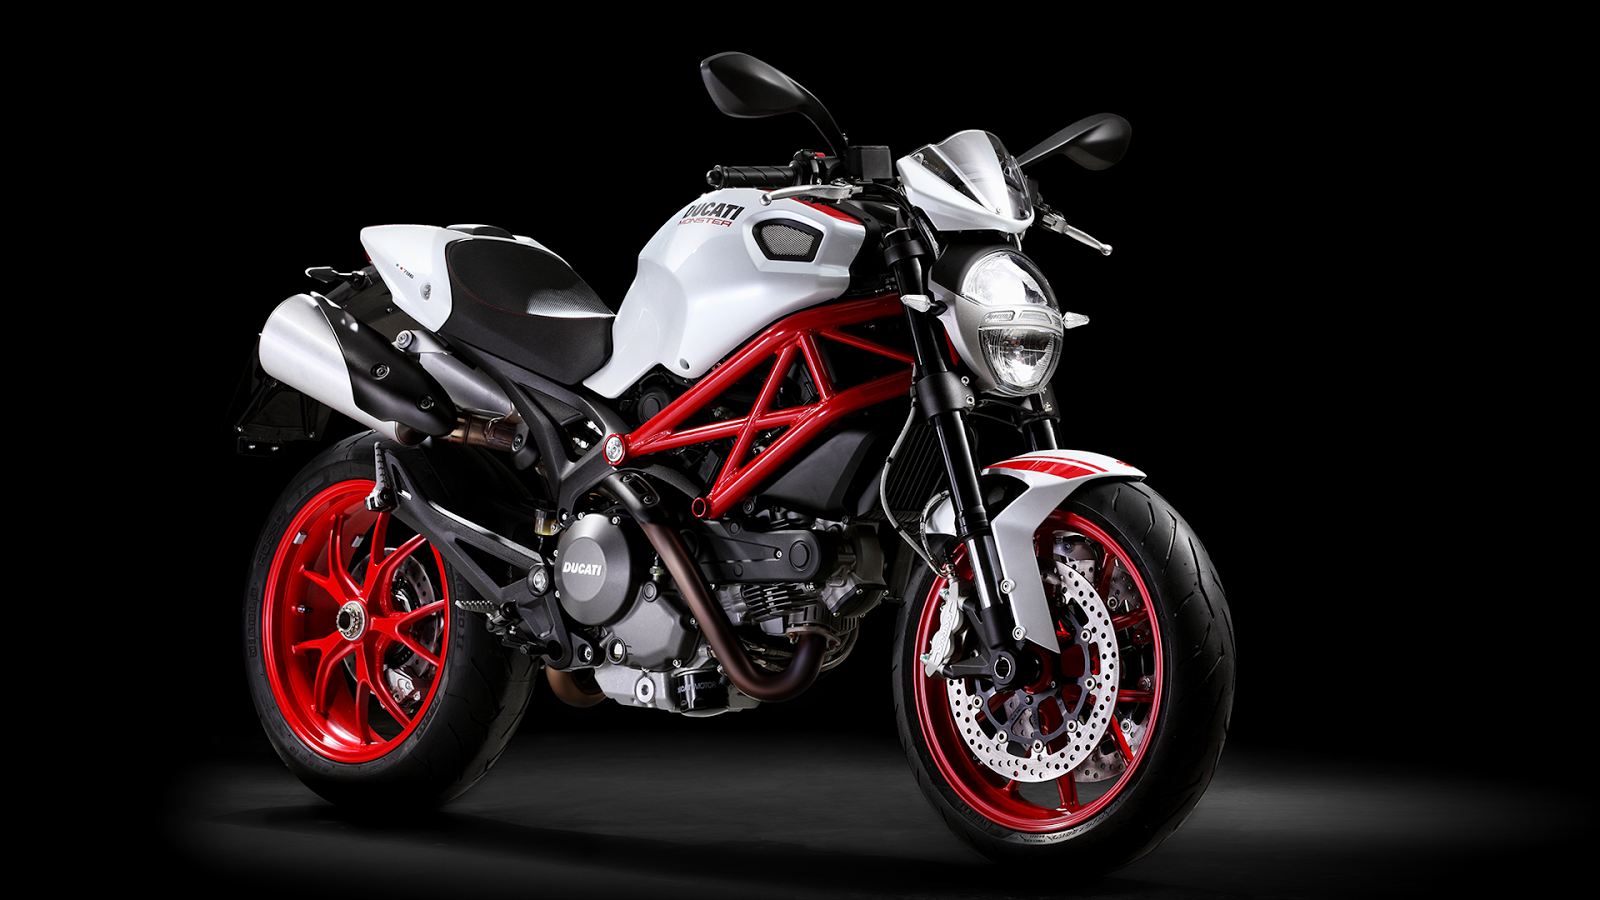 Ducati Monster 796 Corse Stripe 2015 images #146212